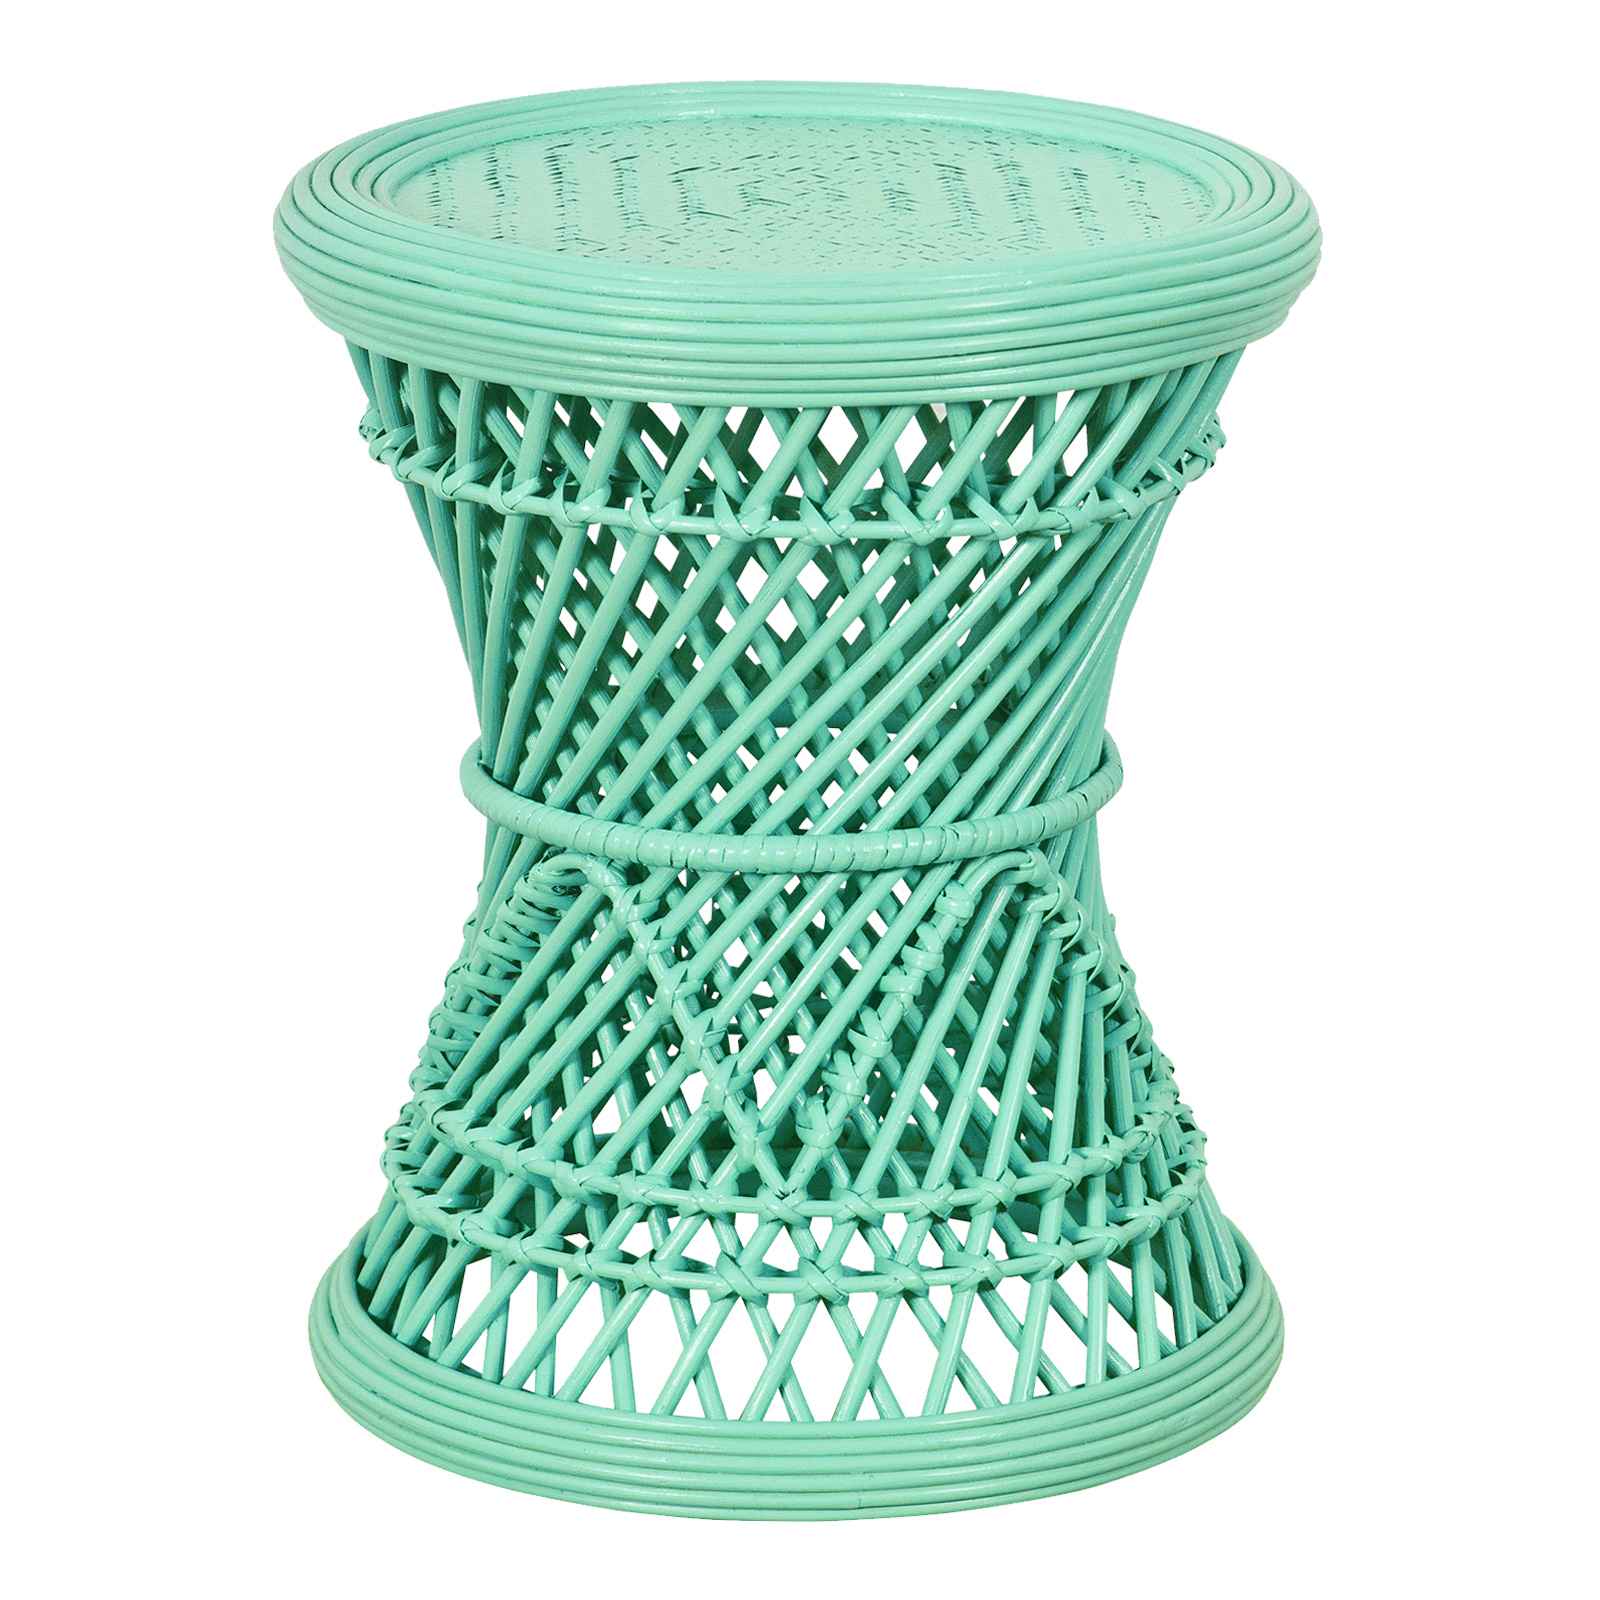 Tahitian Stool_Mint copy.jpg